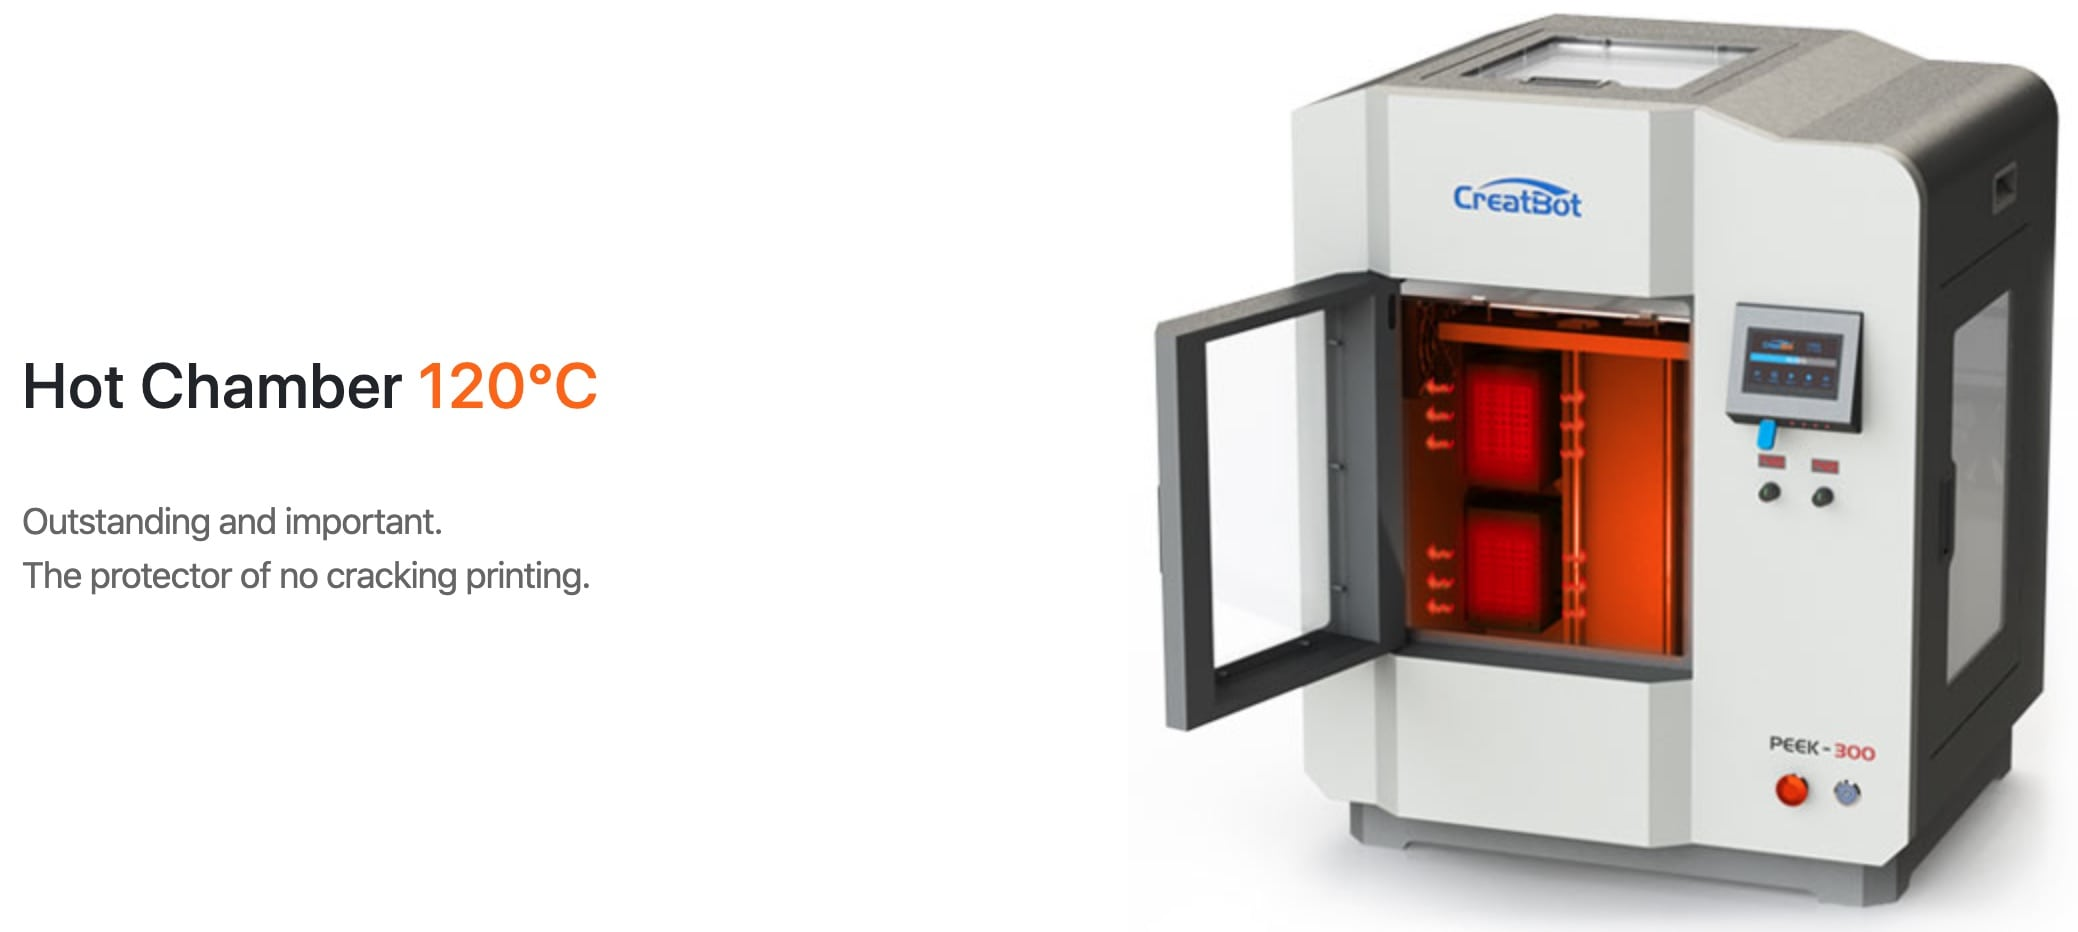 CreatBot PEEK-300 Ultra High-Temperature PEEK ULTEM 3D Printer Description 9